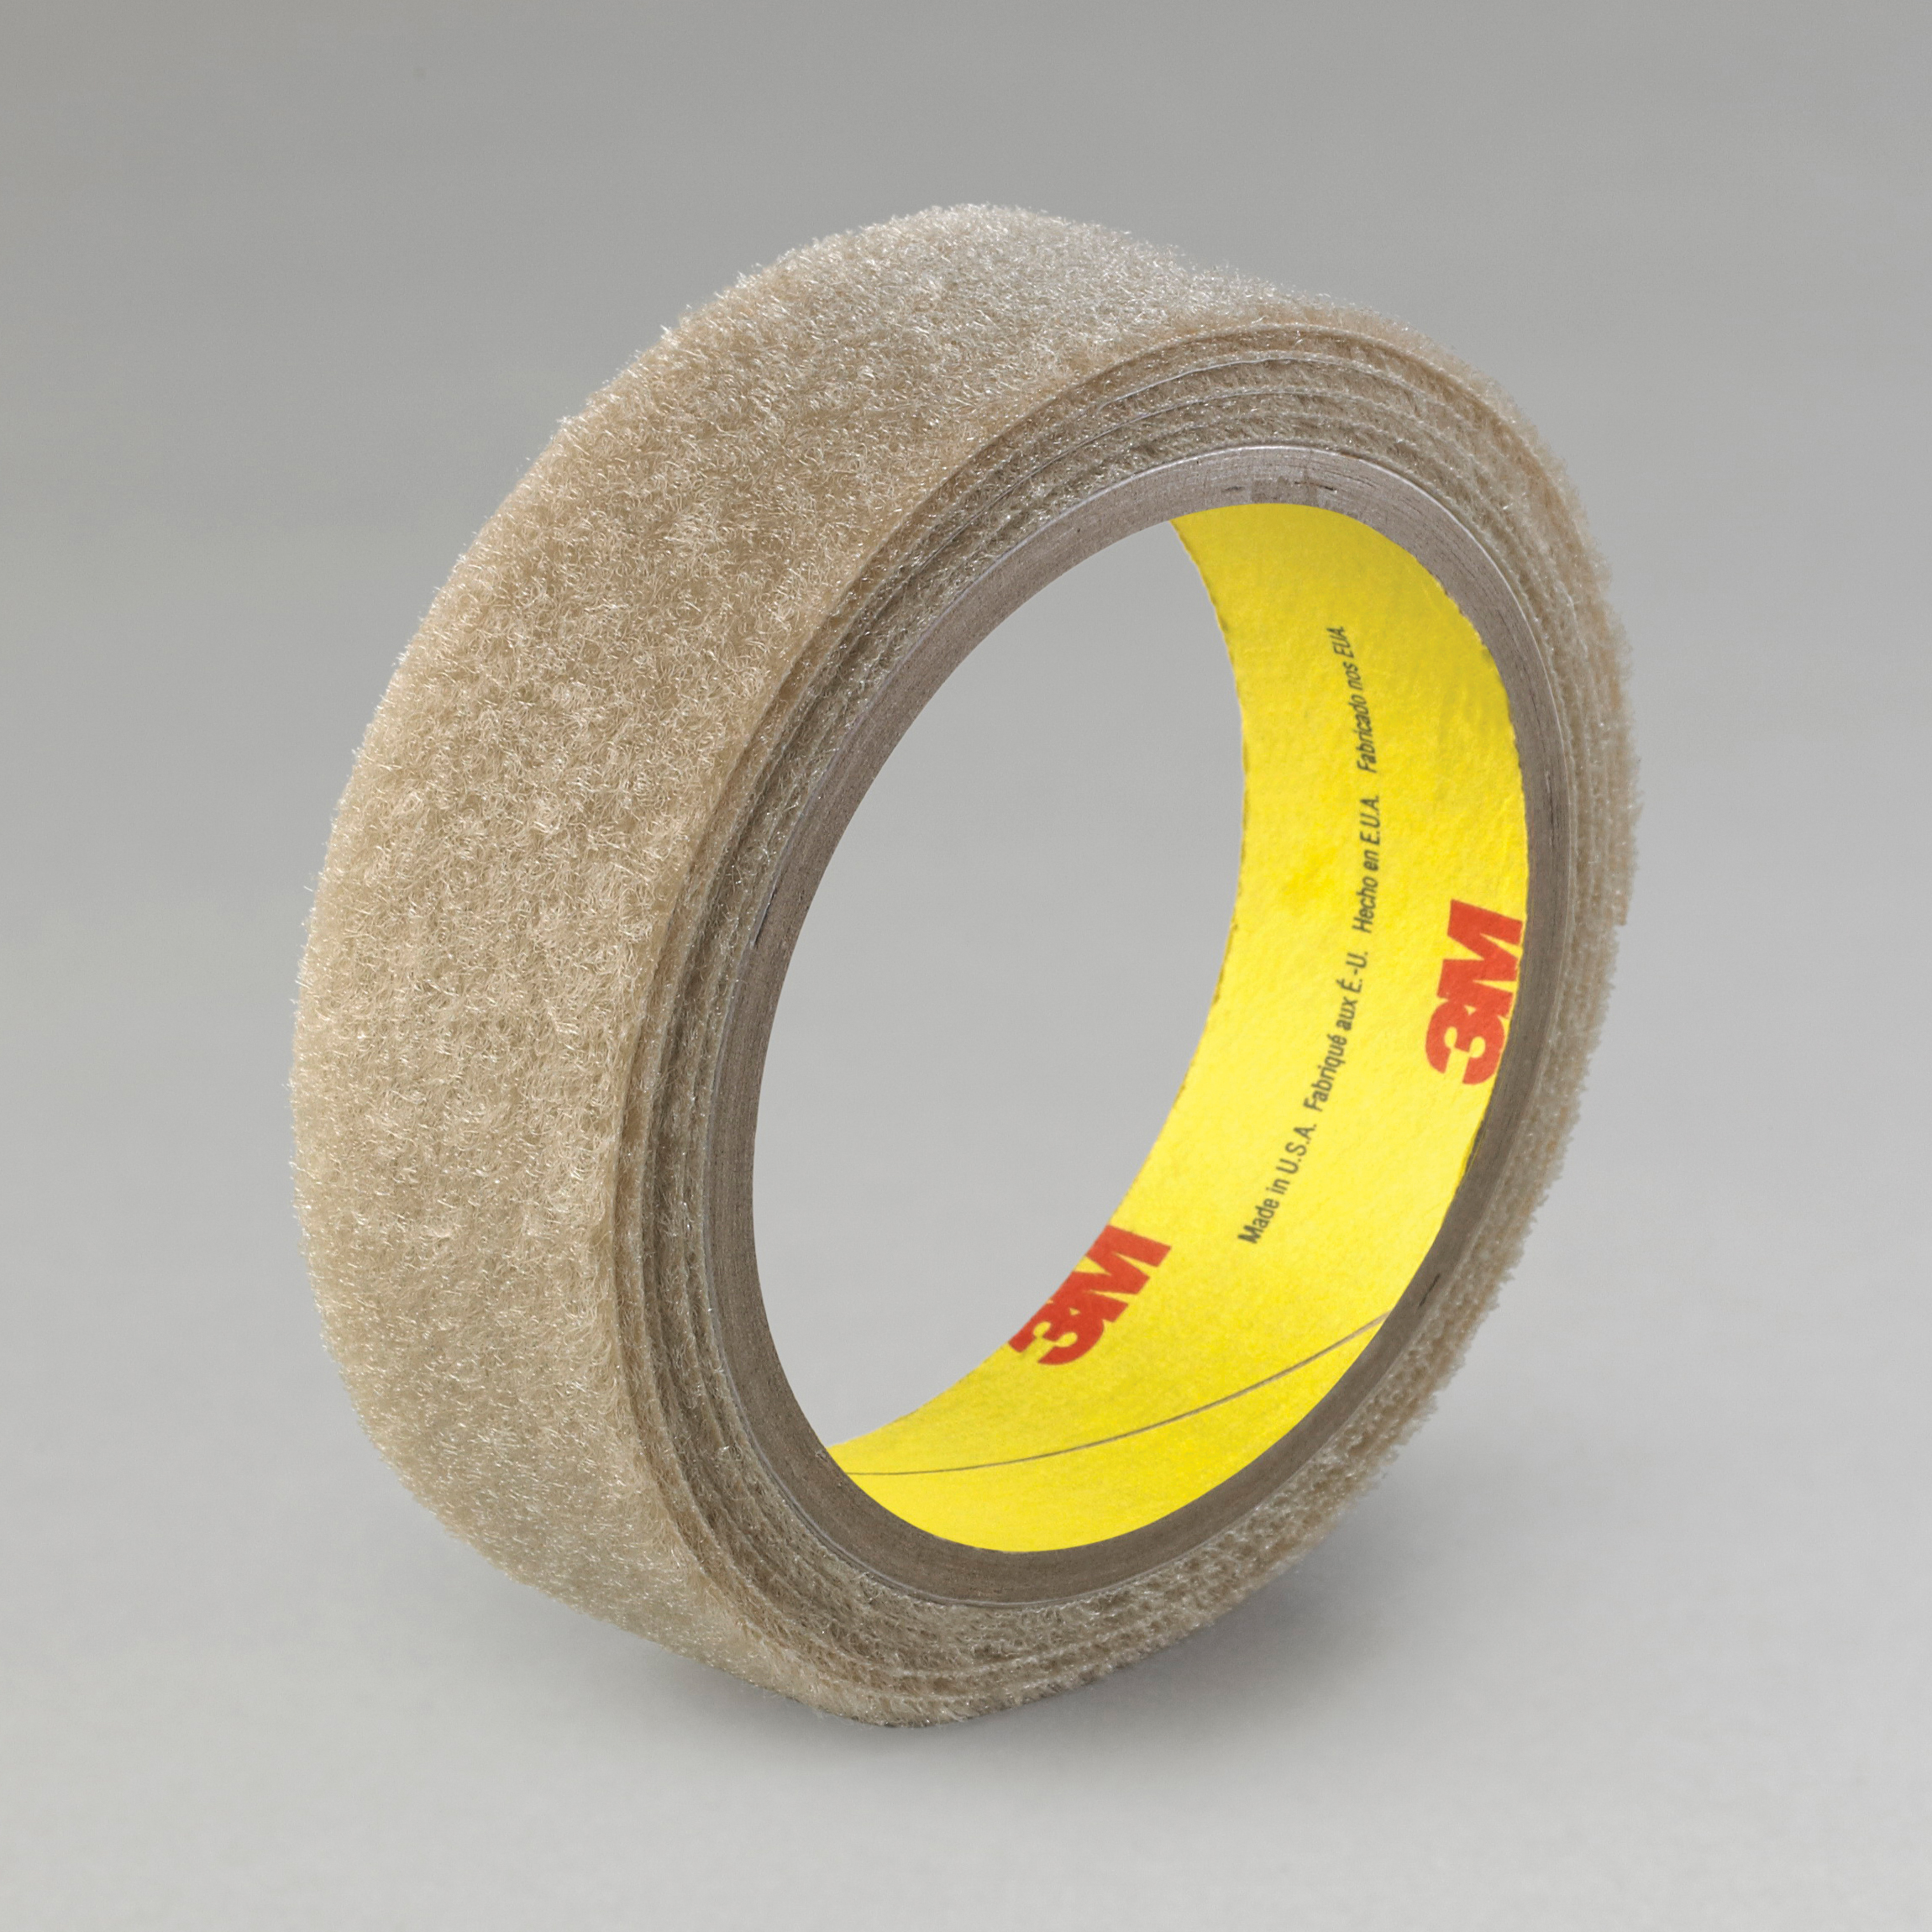 3M™ 021200-63077 Non-Adhesive Reclosable Loop Fastener Tape, 50 yd L x 5/8 in W, 0.15 in THK Engaged, Woven Nylon Backing, Beige